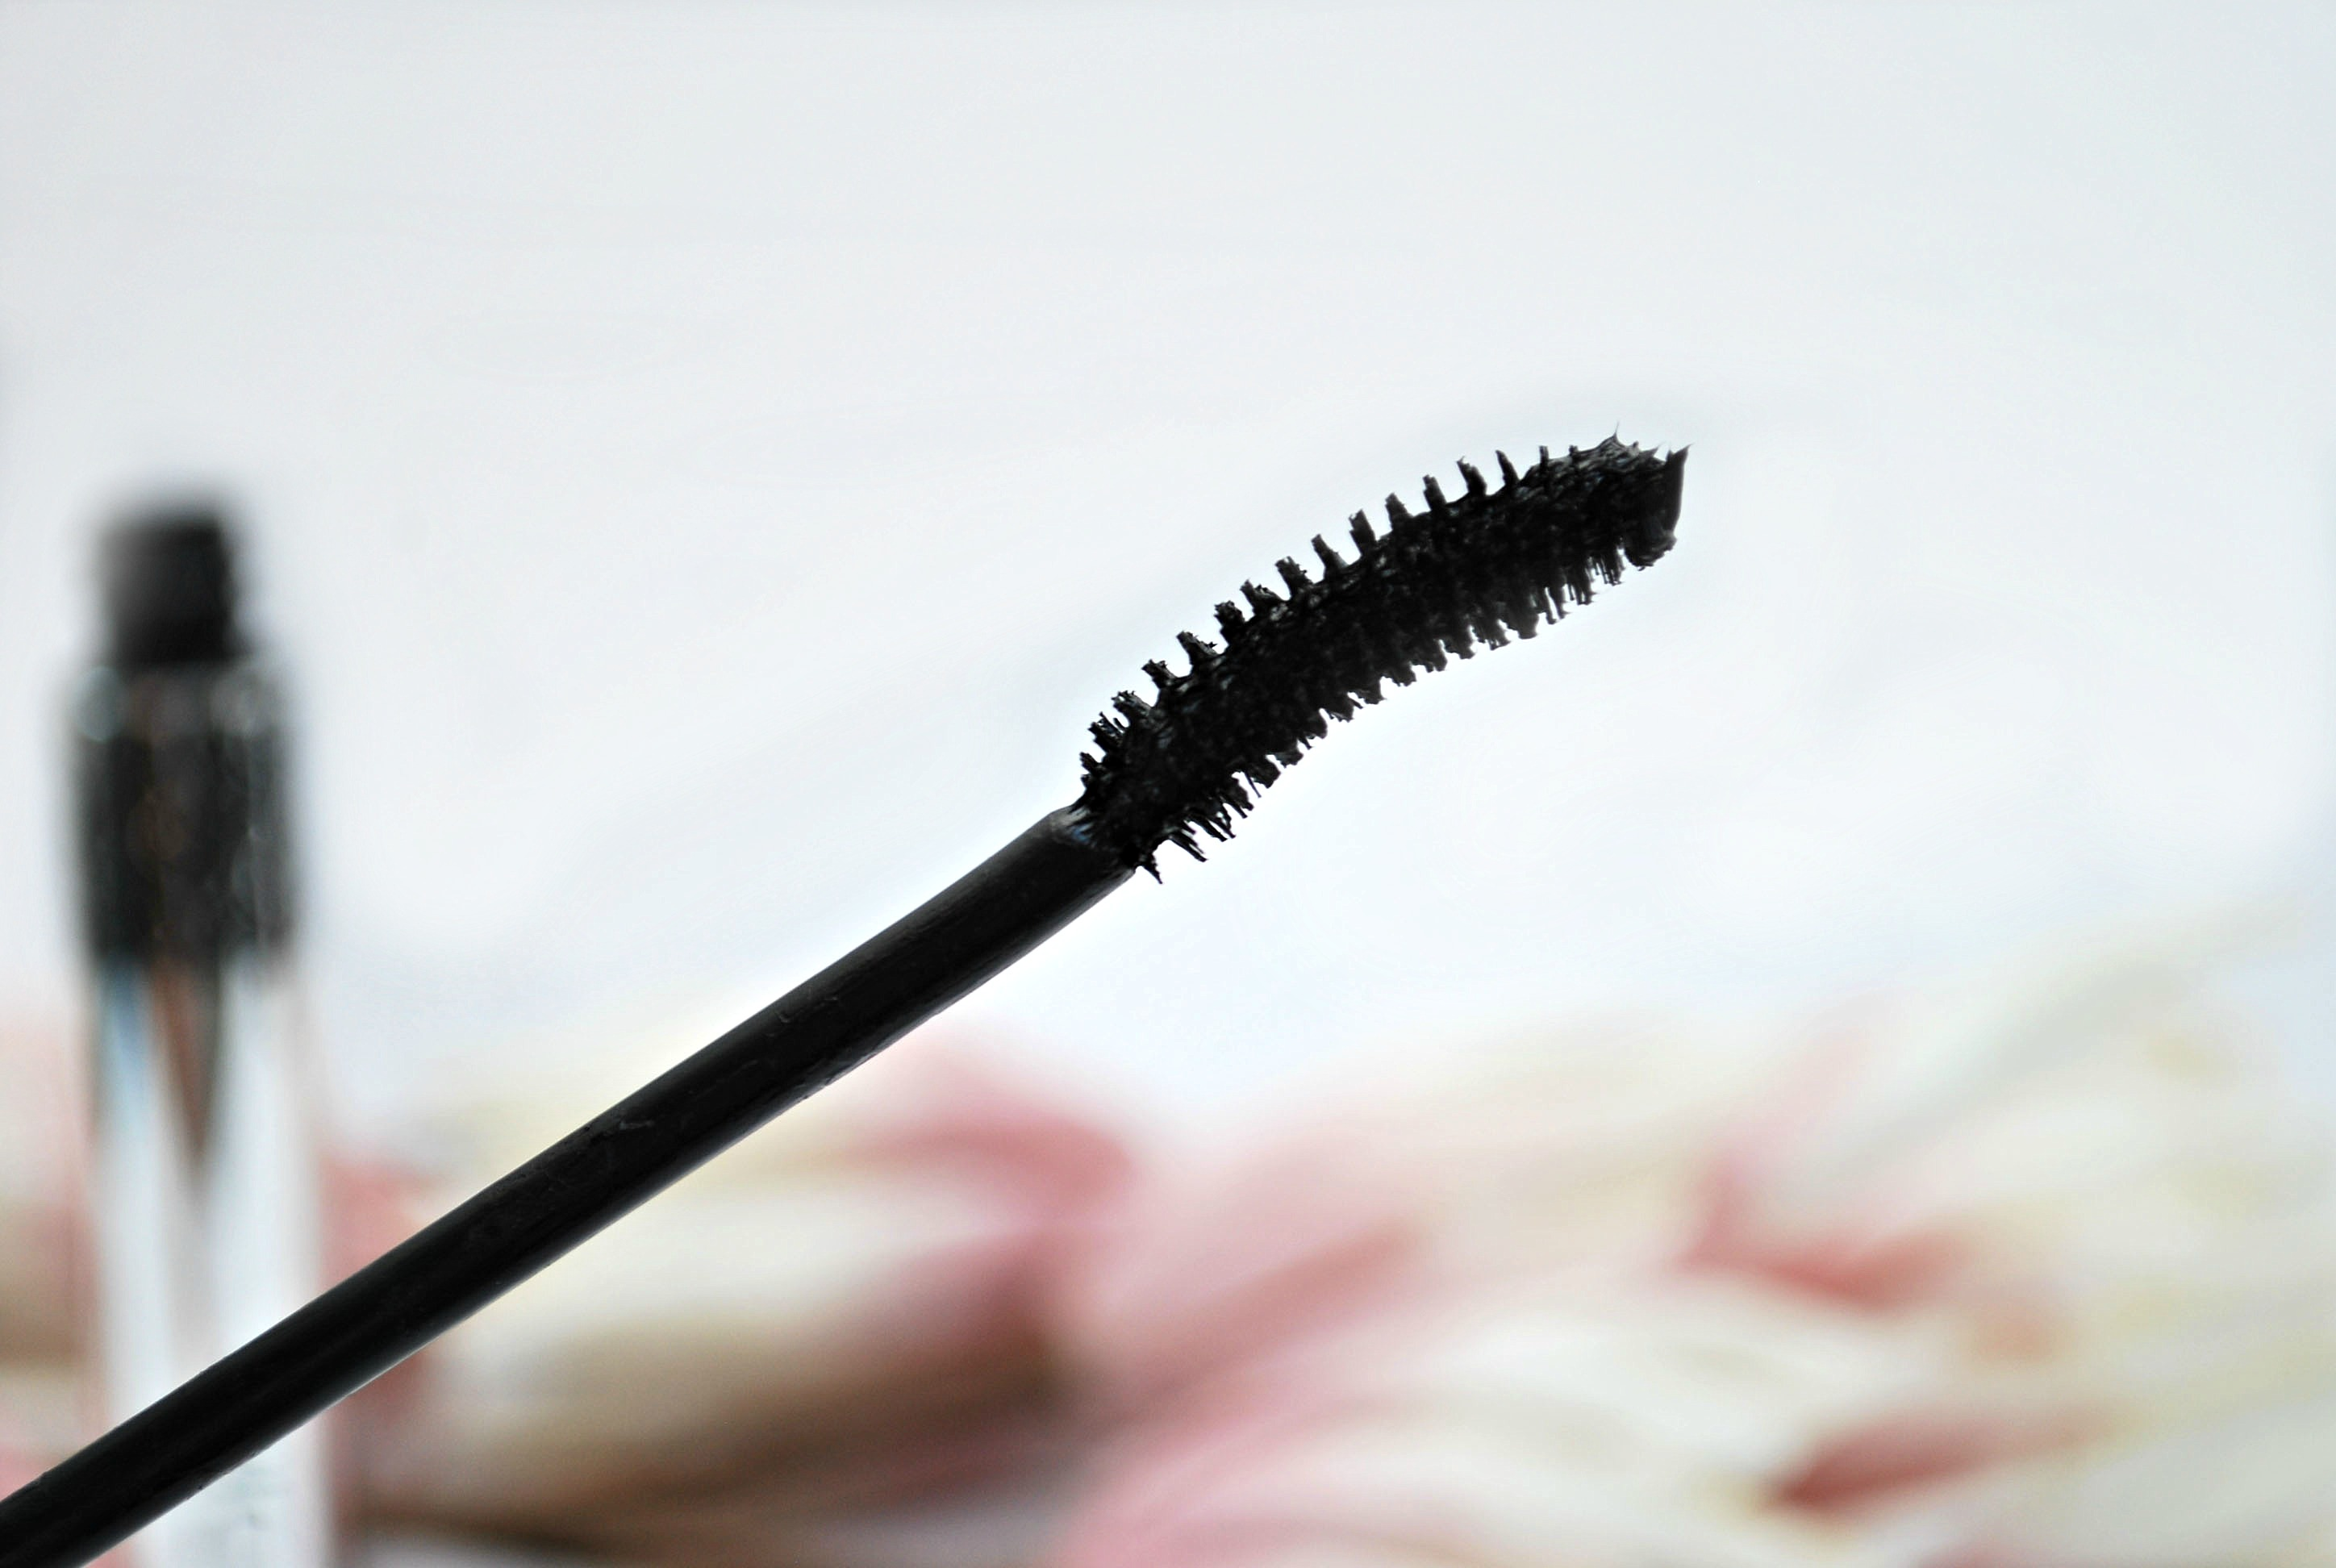 dior iconic overcurl mascara review